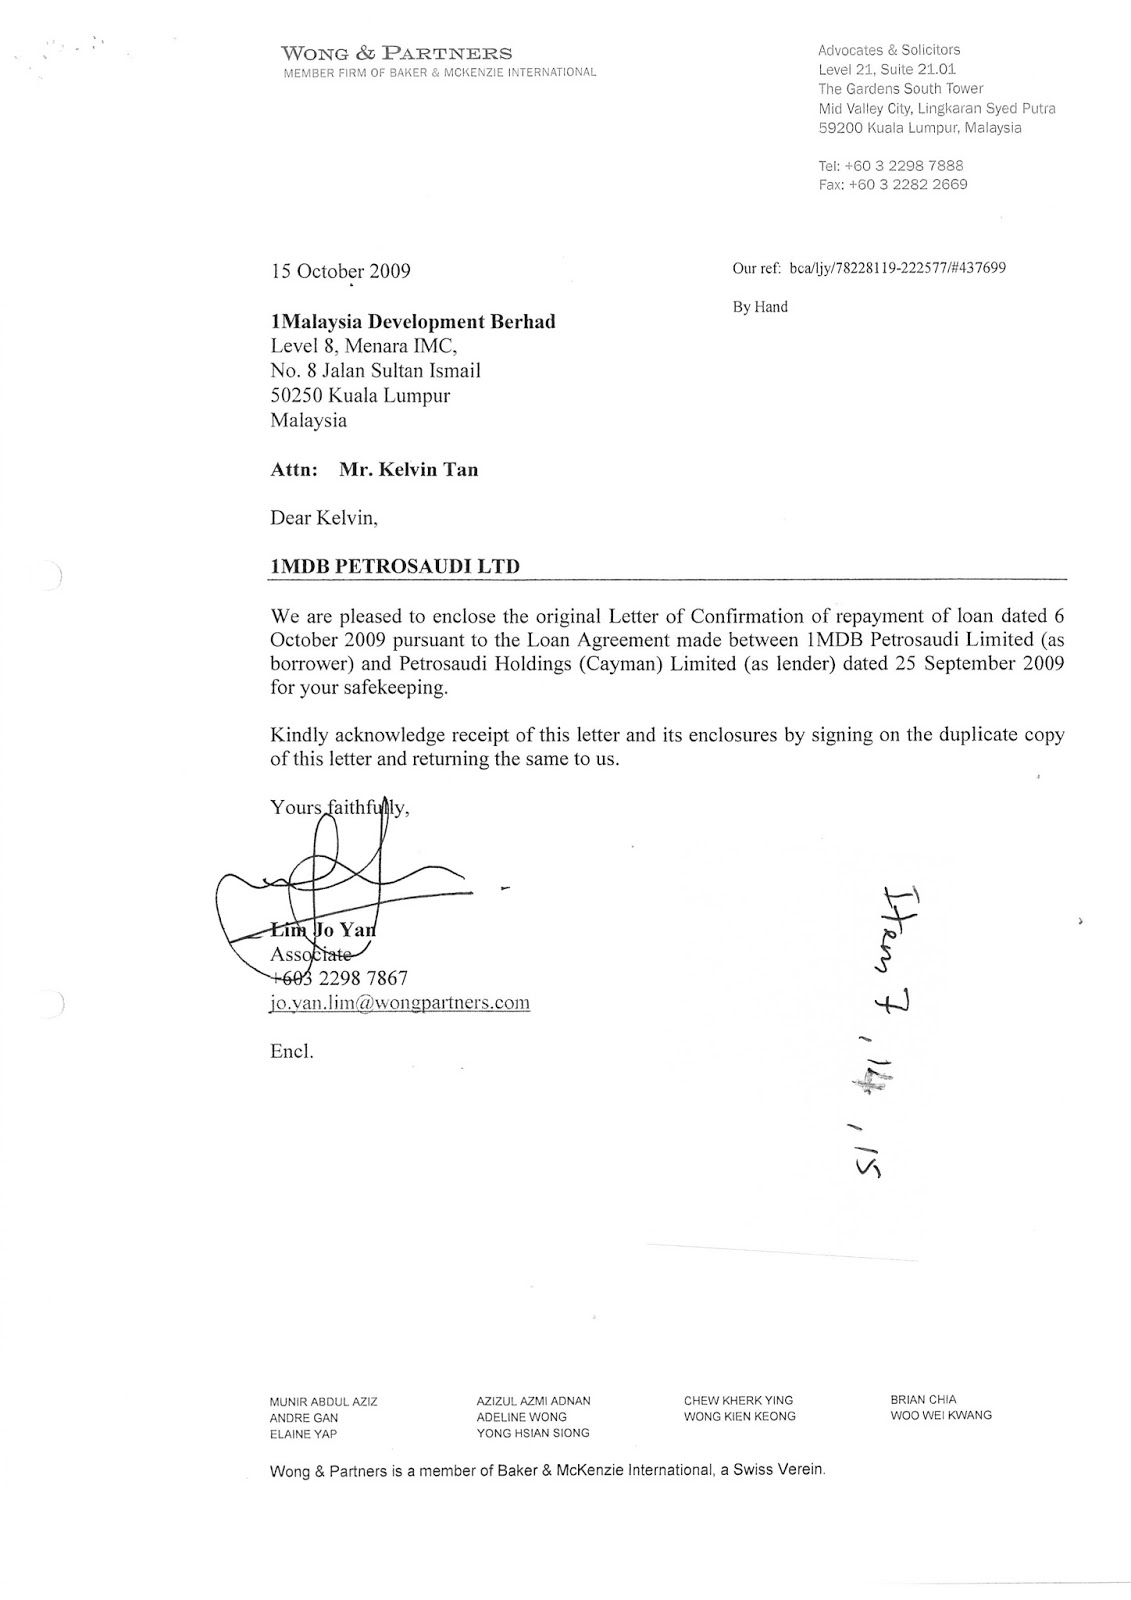 confirmation of verbal instruction letter